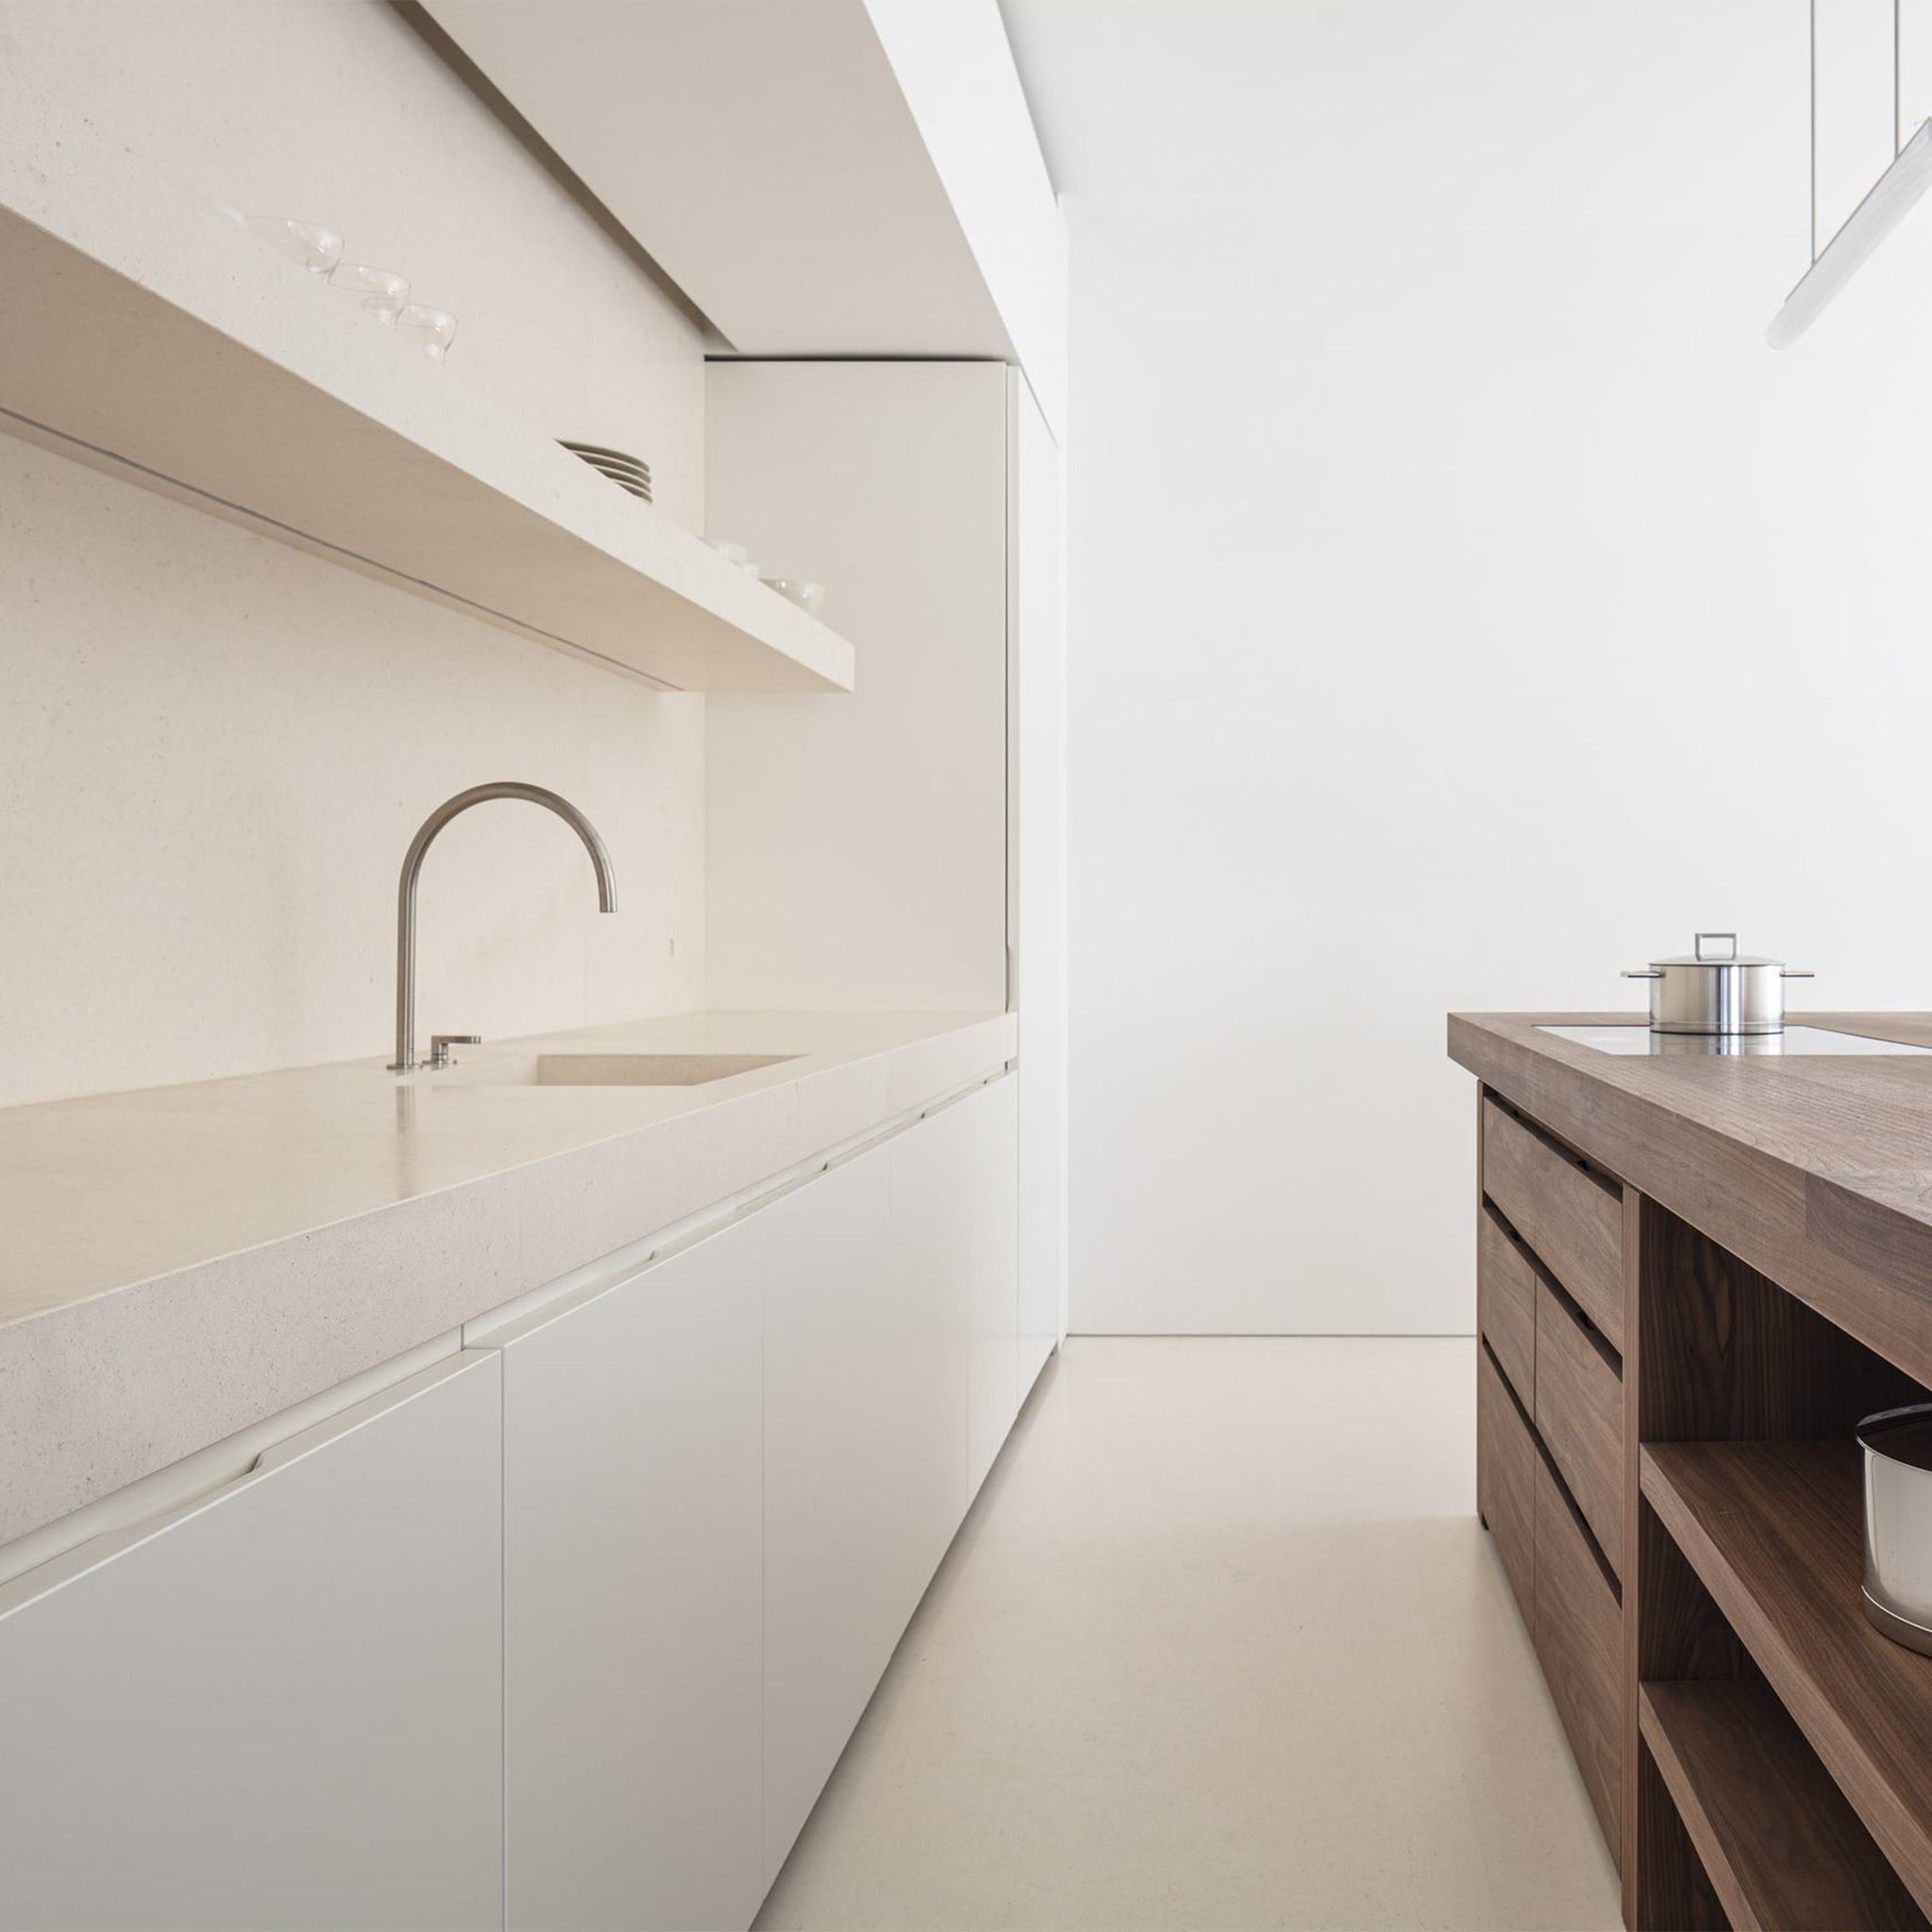 John Pawson Signature Kitchen Architectural John Pawson Designer Furniture Sku: 780-255-10004